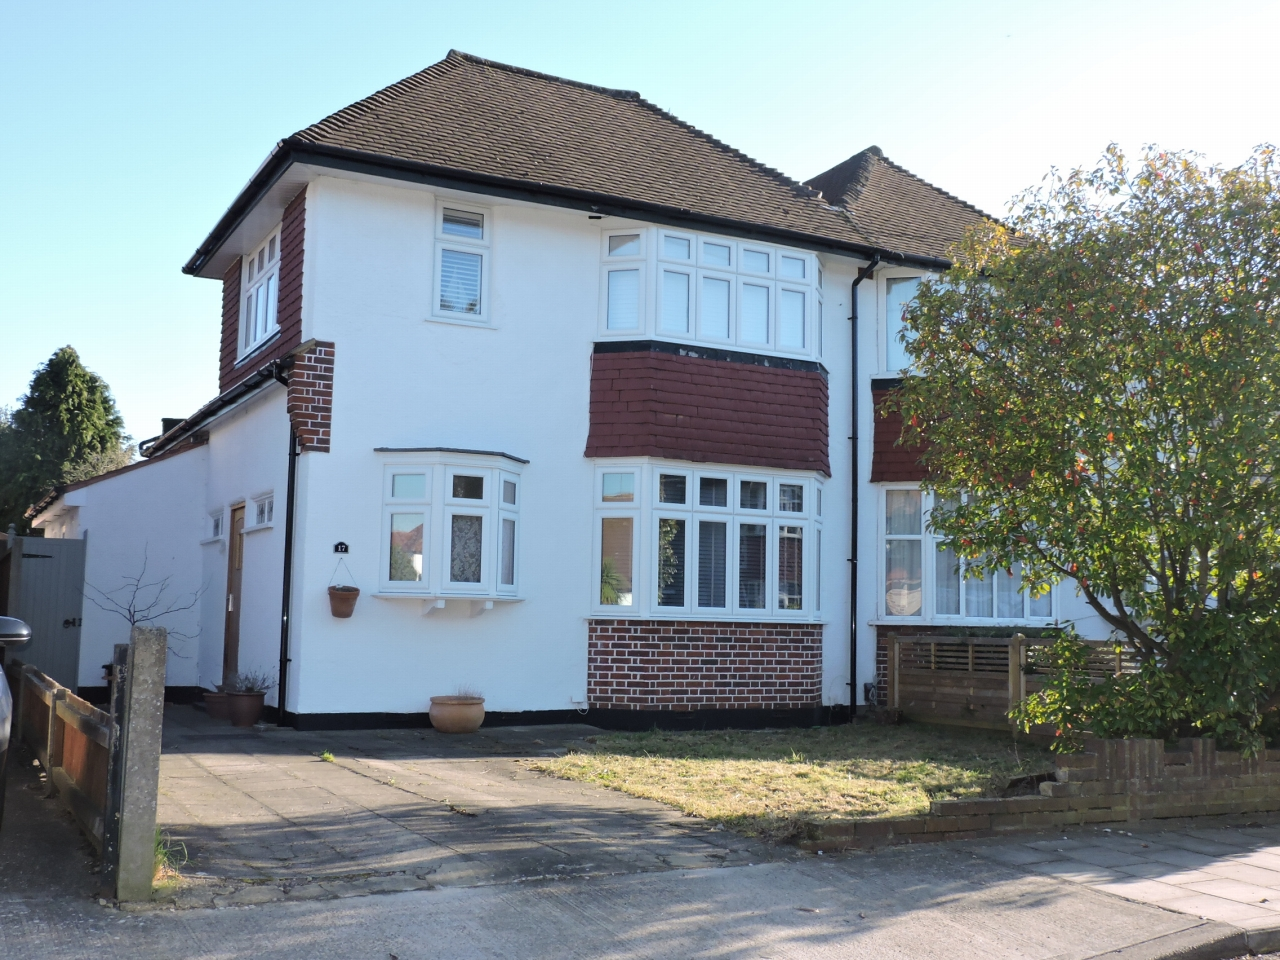 3 bedroom semi-detached house Sold in New Malden - Photograph 1